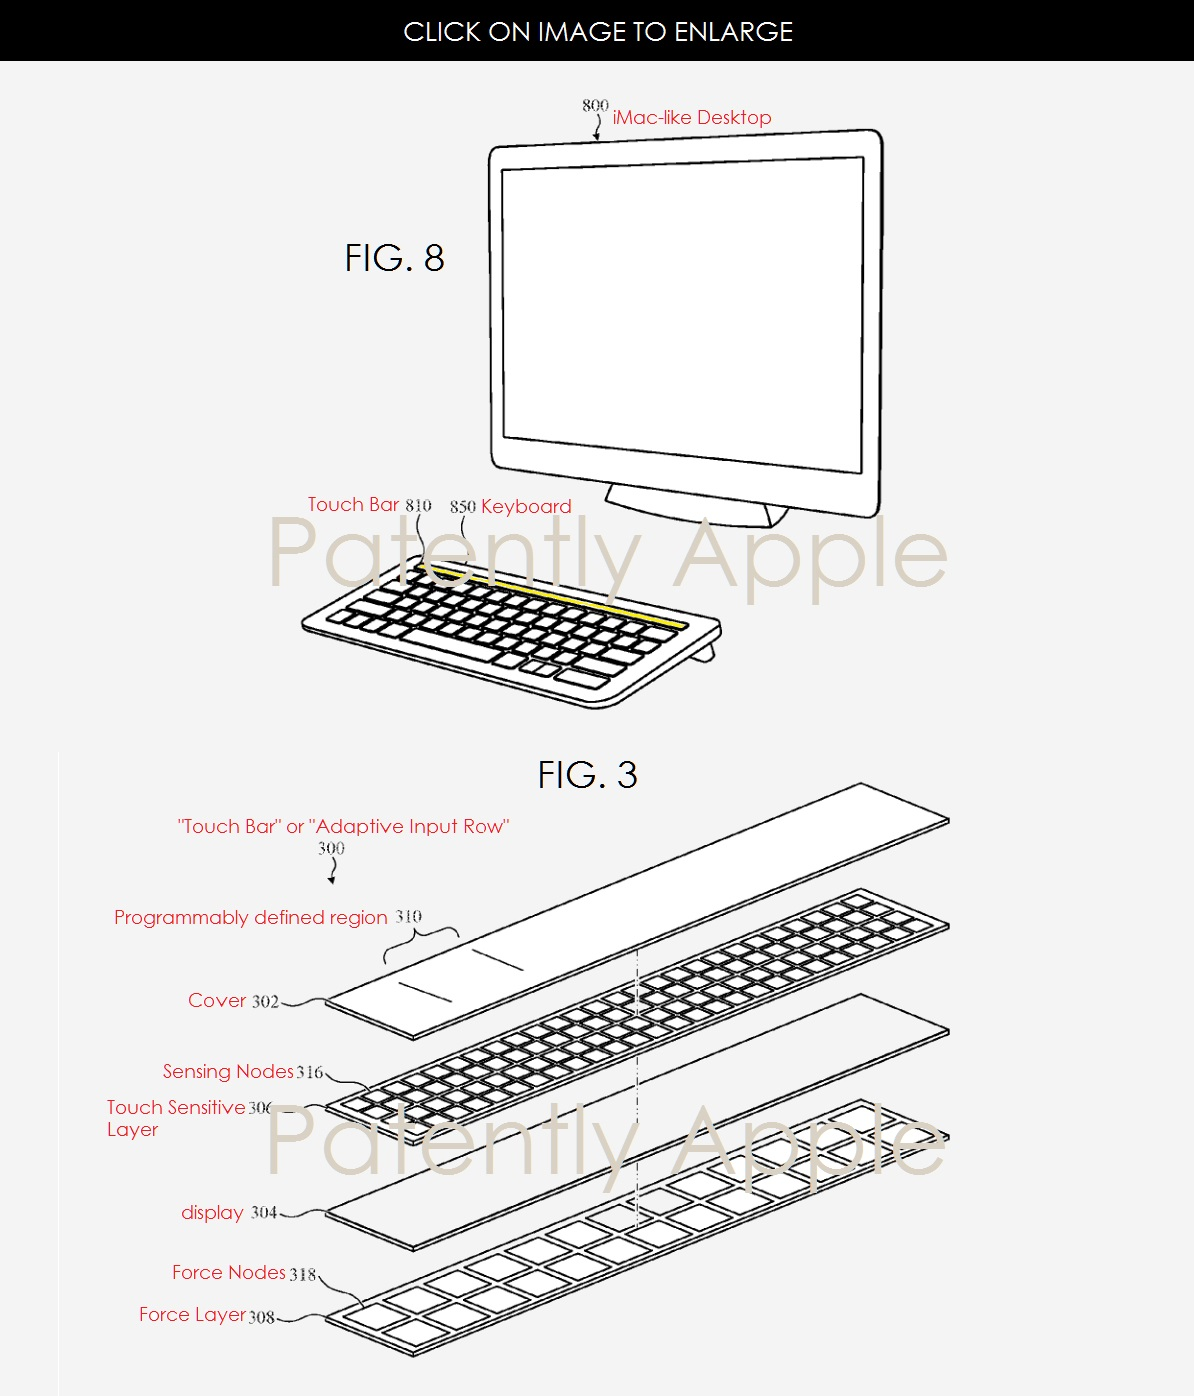 3ff3b446264 Would you like to see the Touch Bar and Touch ID features on the upcoming  Magic Keyboard? Let us know your thoughts down in the comments.